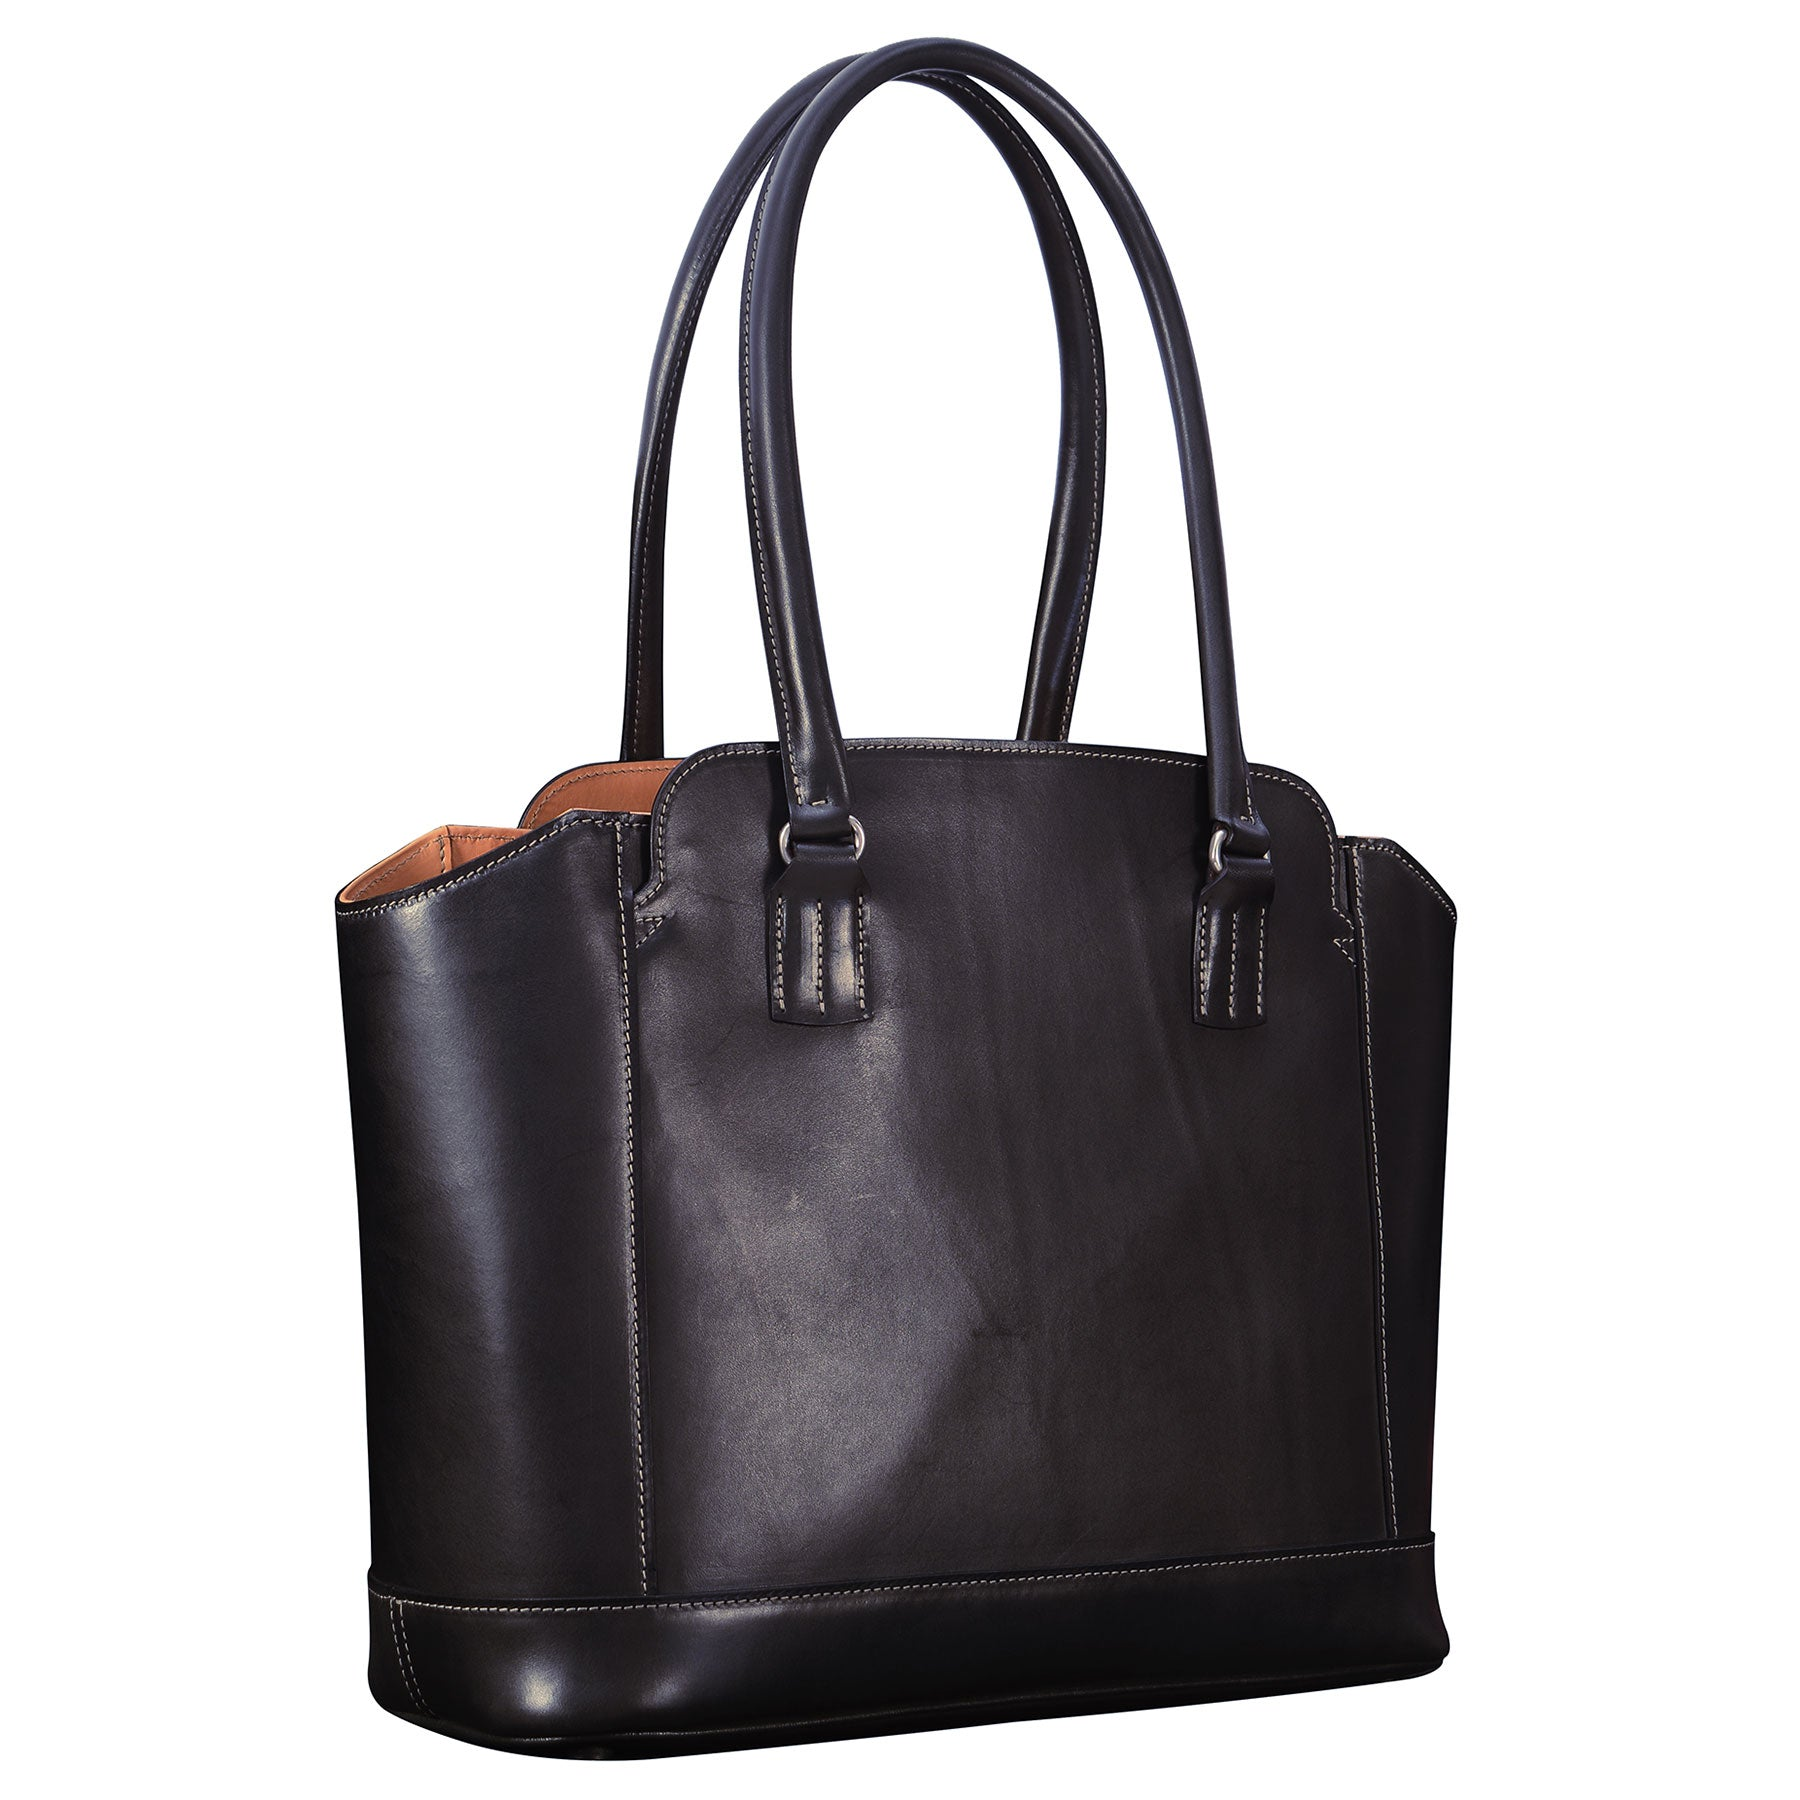 Glaser Designs City Tote with Long Handles . Hand burnished Black vegetable tanned leather. Solid brass hardware. Made to measure, custom sizes.